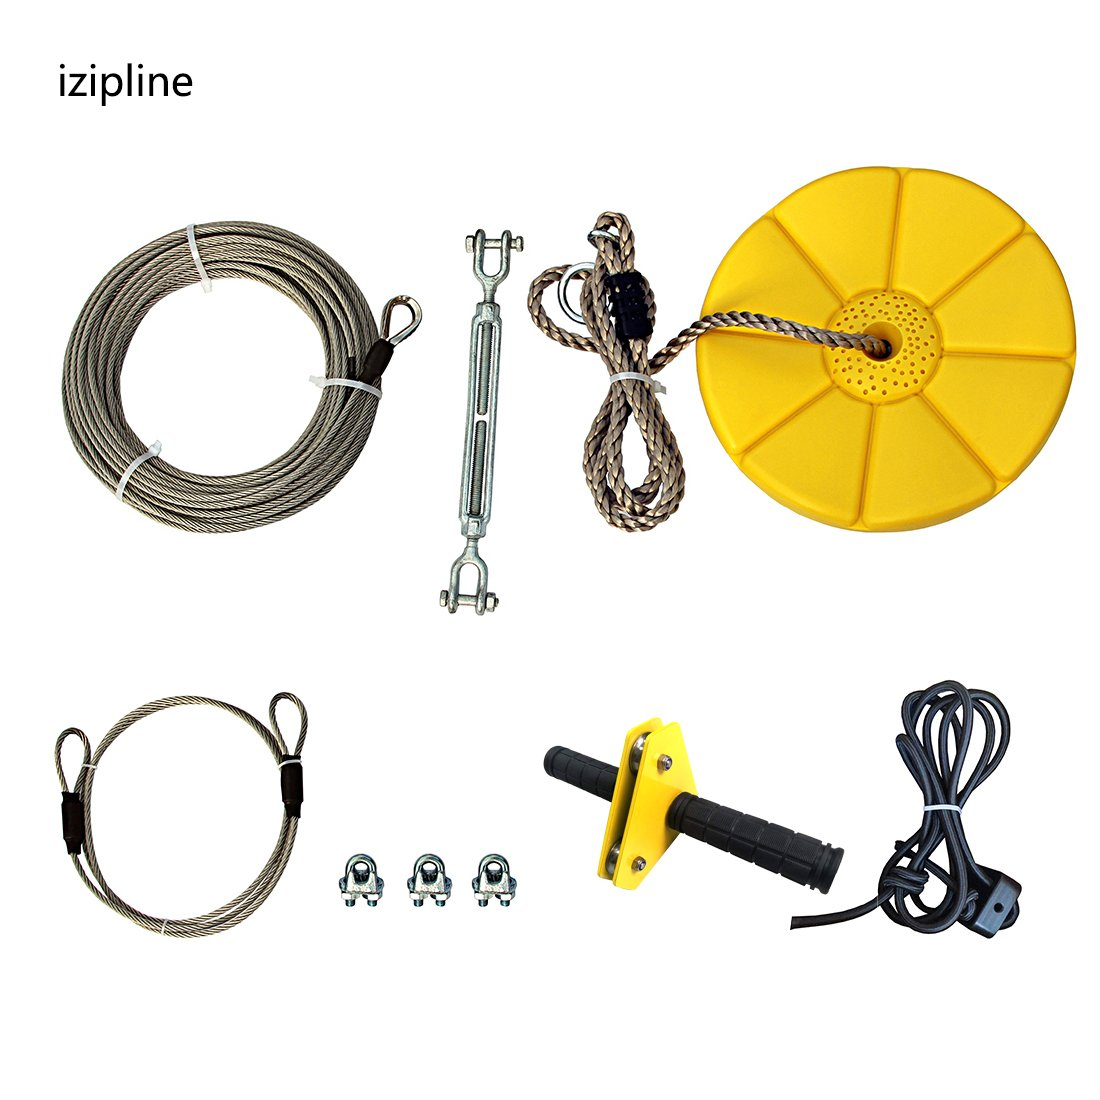 iZipline 95 Feet Zip line Kit with Seat and Bungee Brake,Speed Trolley Pulley with Grip Handle Bar,Zipline kit for Kids and Adults Backyard Playground Adventures Diamond Yellow by iZipline